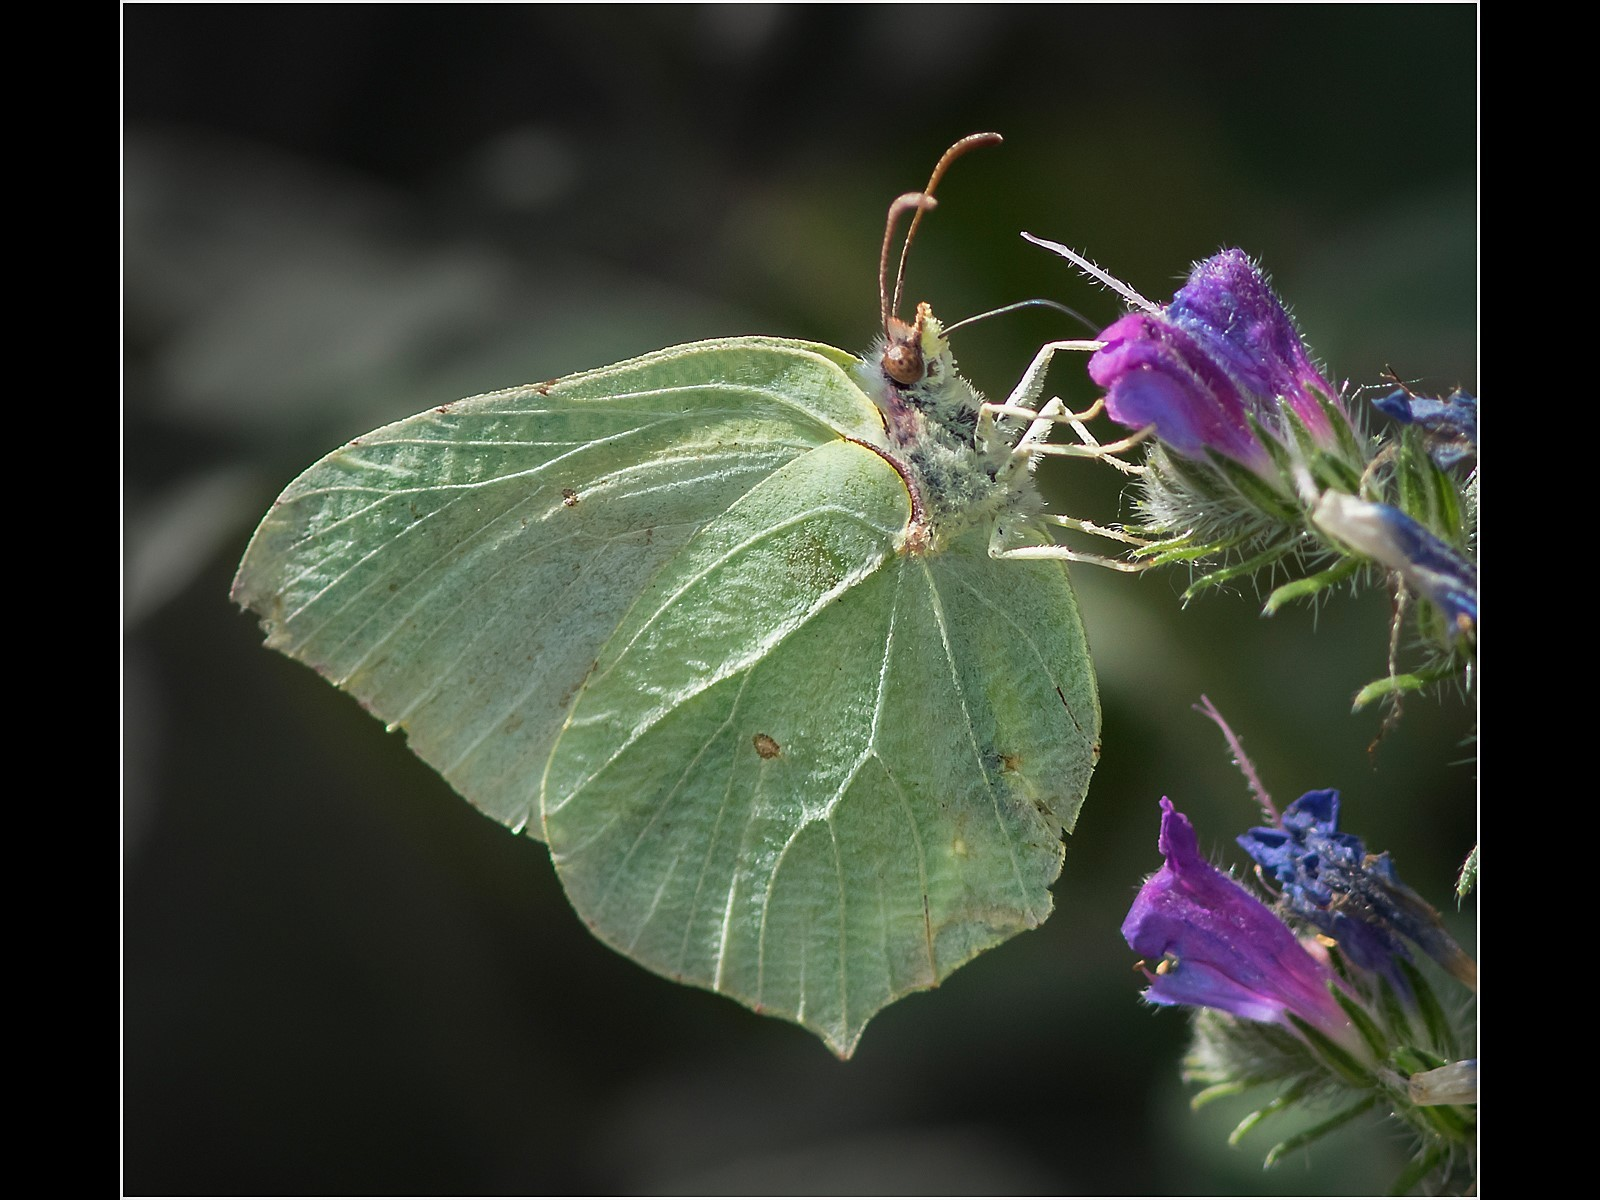 Brimstone Butterfly Feeding on Wild Flower